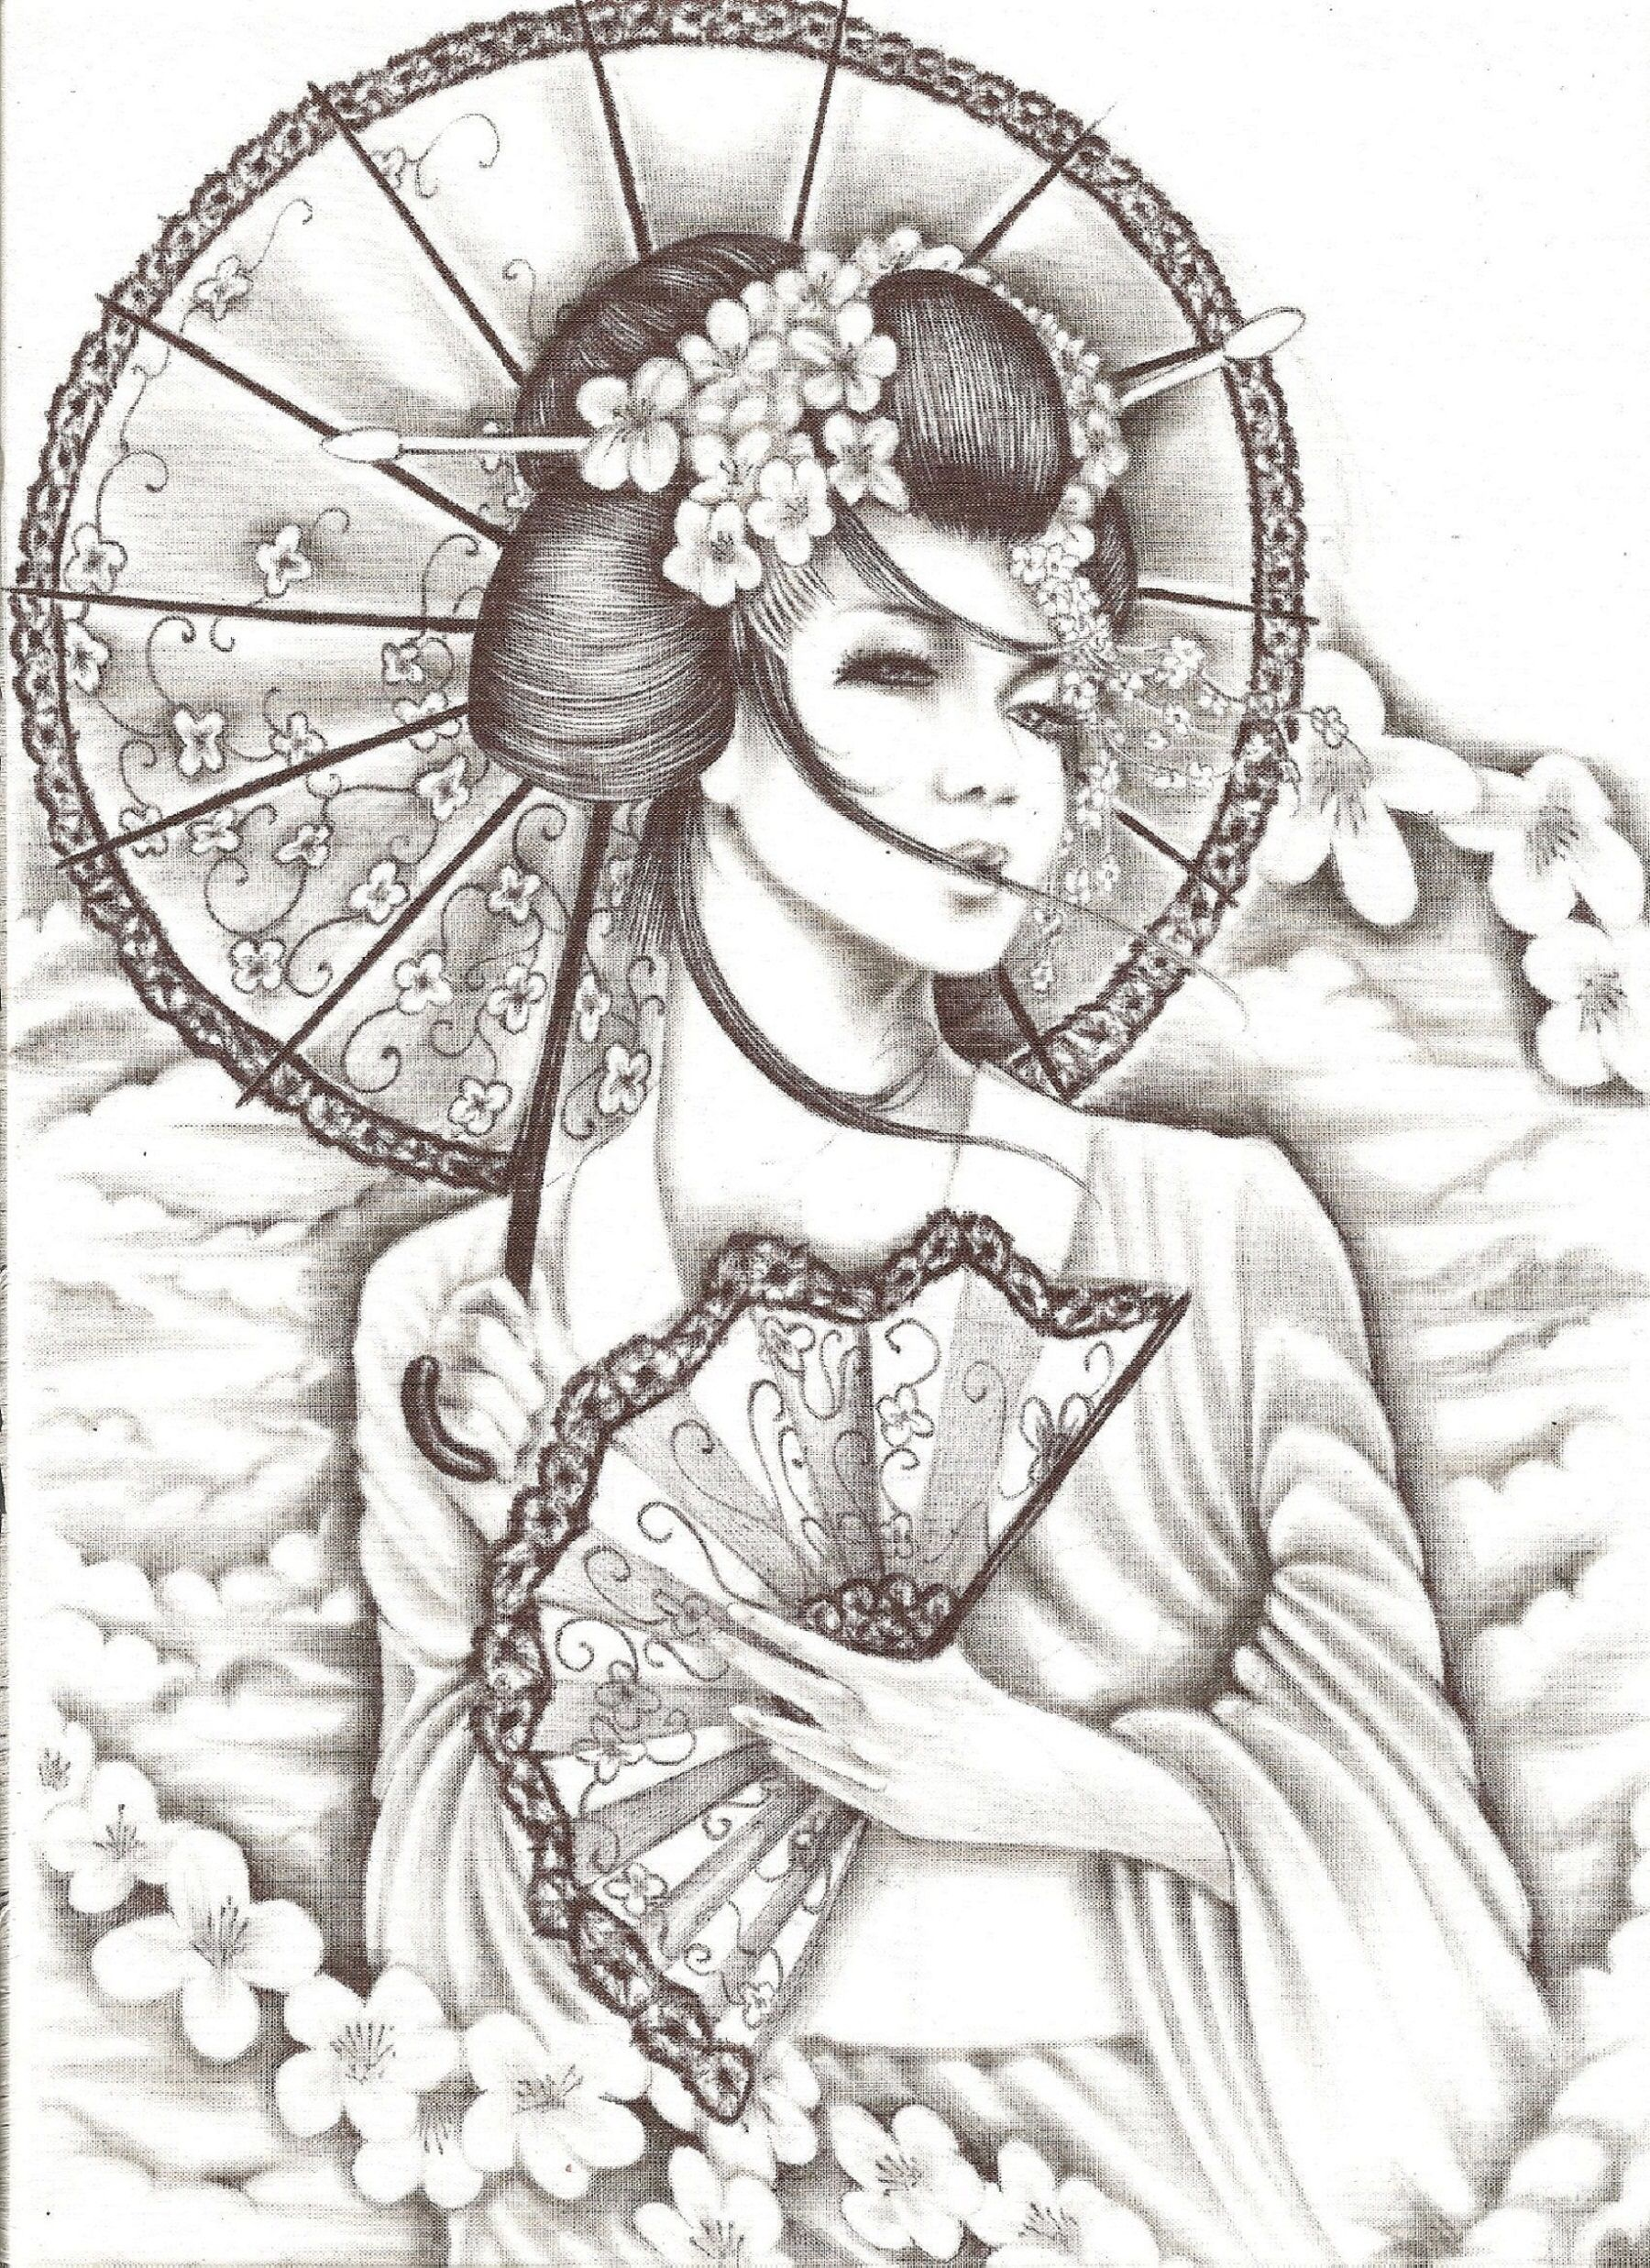 Image from http://www.tattoosforyou.org/wp-content/uploads/2013/11/Geisha-Samurai-Tattoo.jpg.